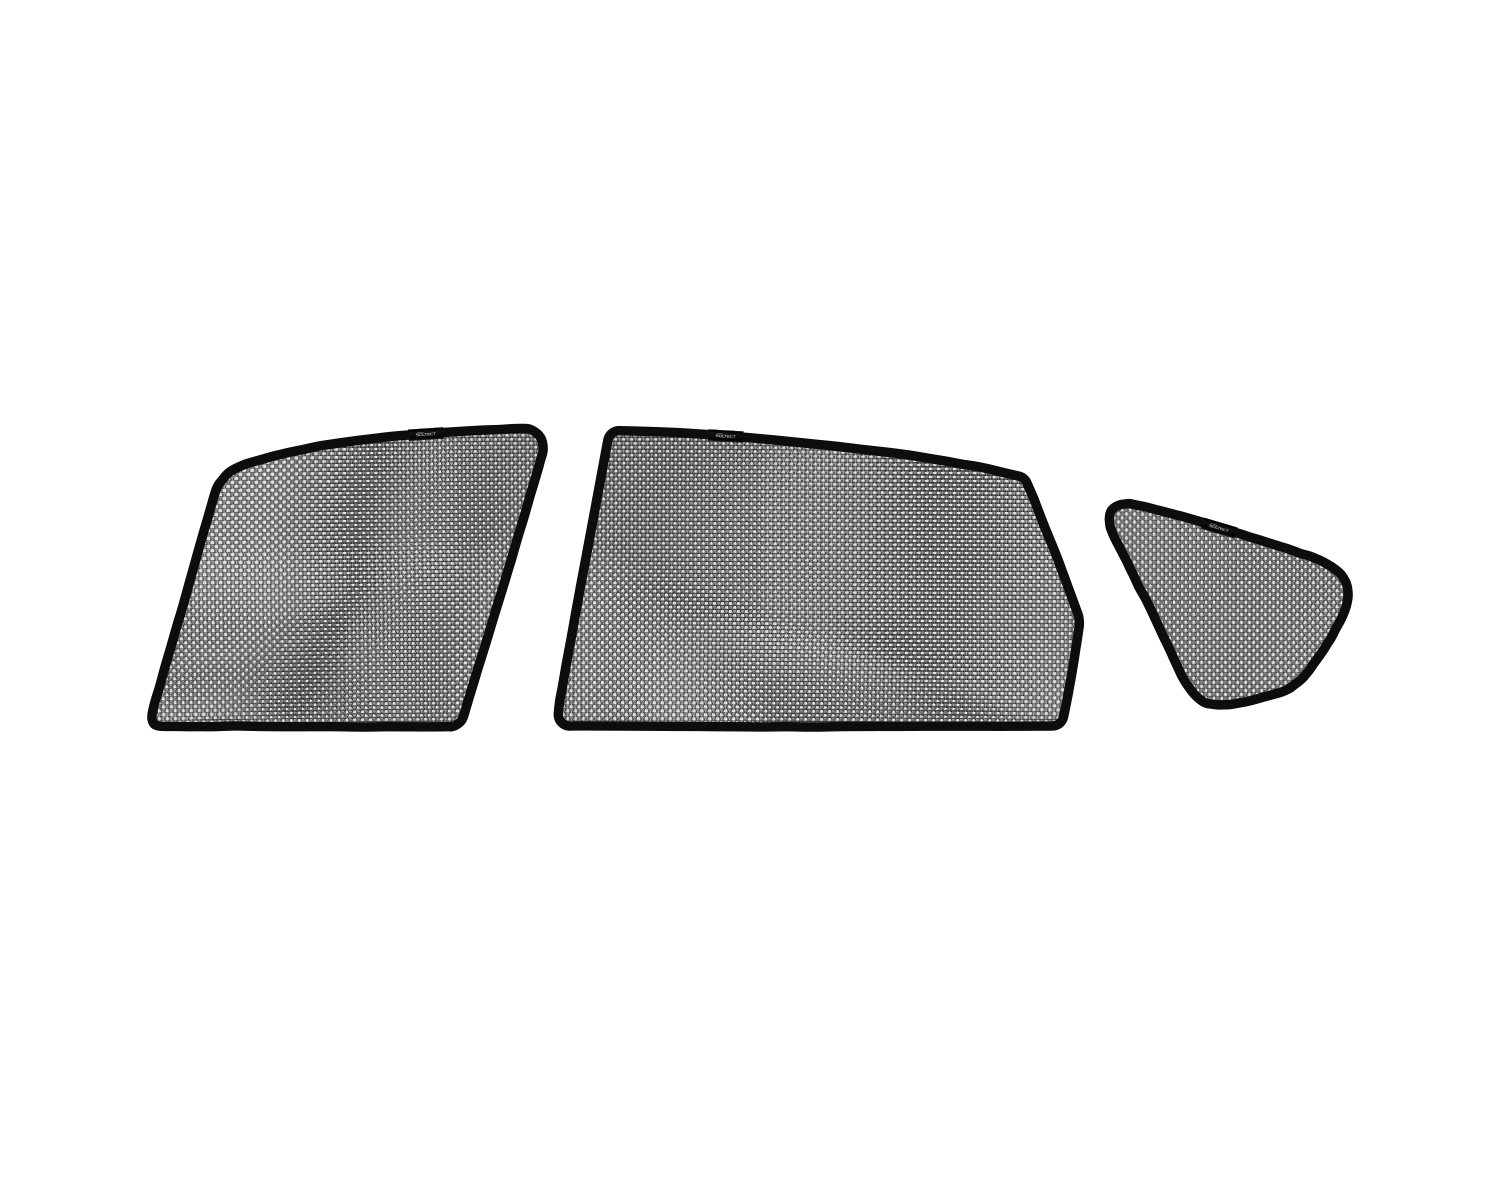 3D MAXpider S1SB0051 Soltect Side Window Custom Fit Sun Shade (for Select Subaru Impreza Models)